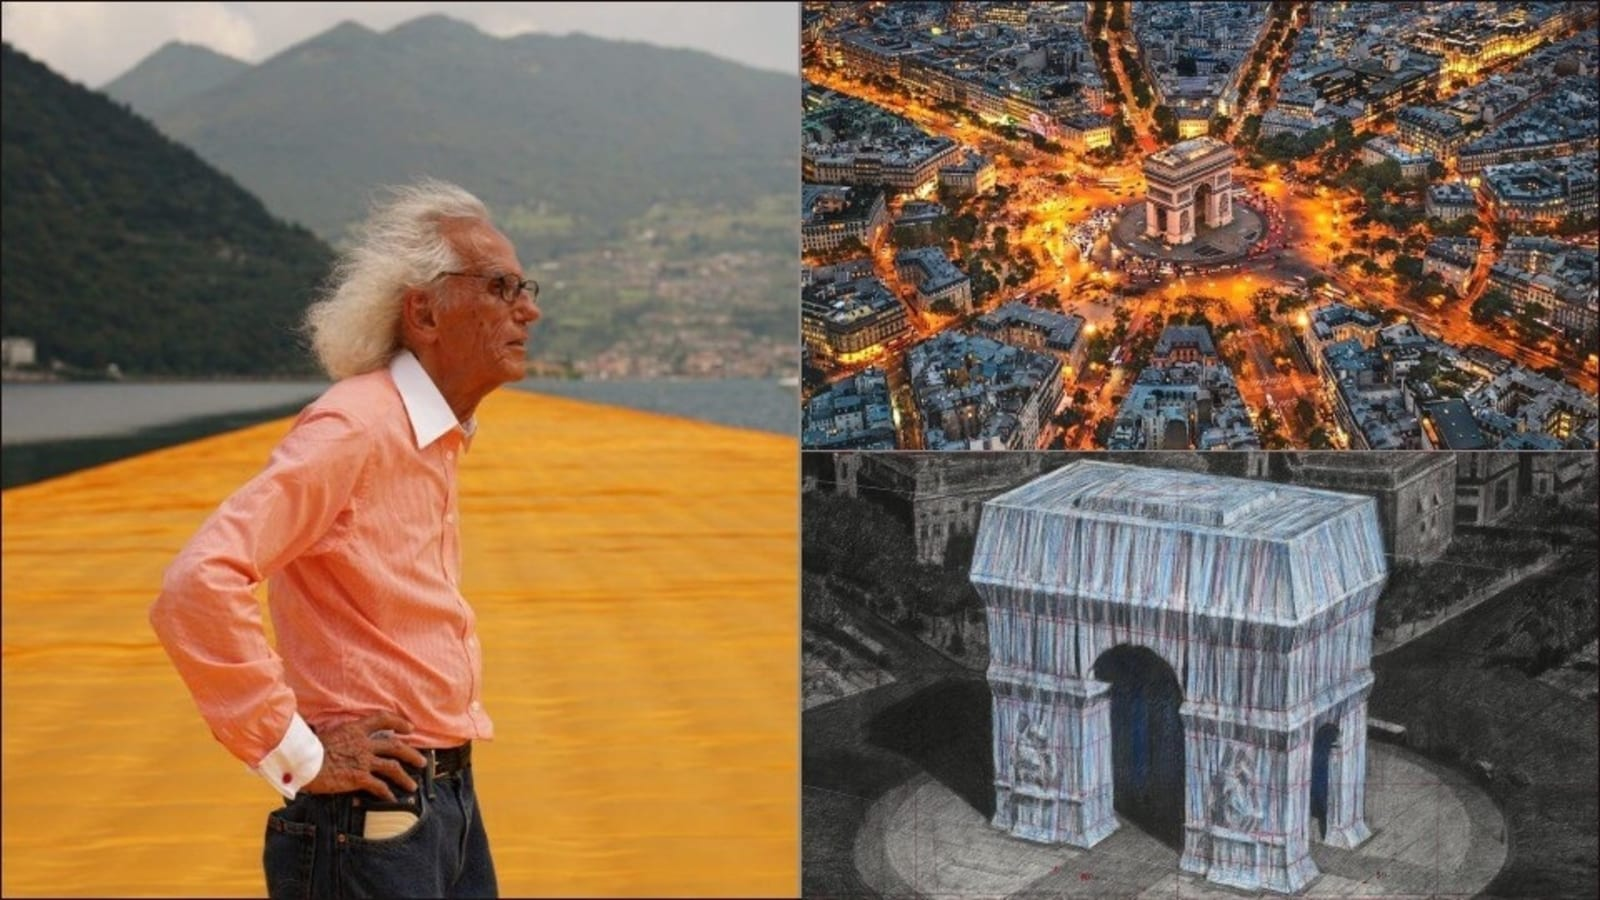 Christo's temporary artwork, L'Arc de Triomphe, due for wrap in September 2021 - Hindustan Times